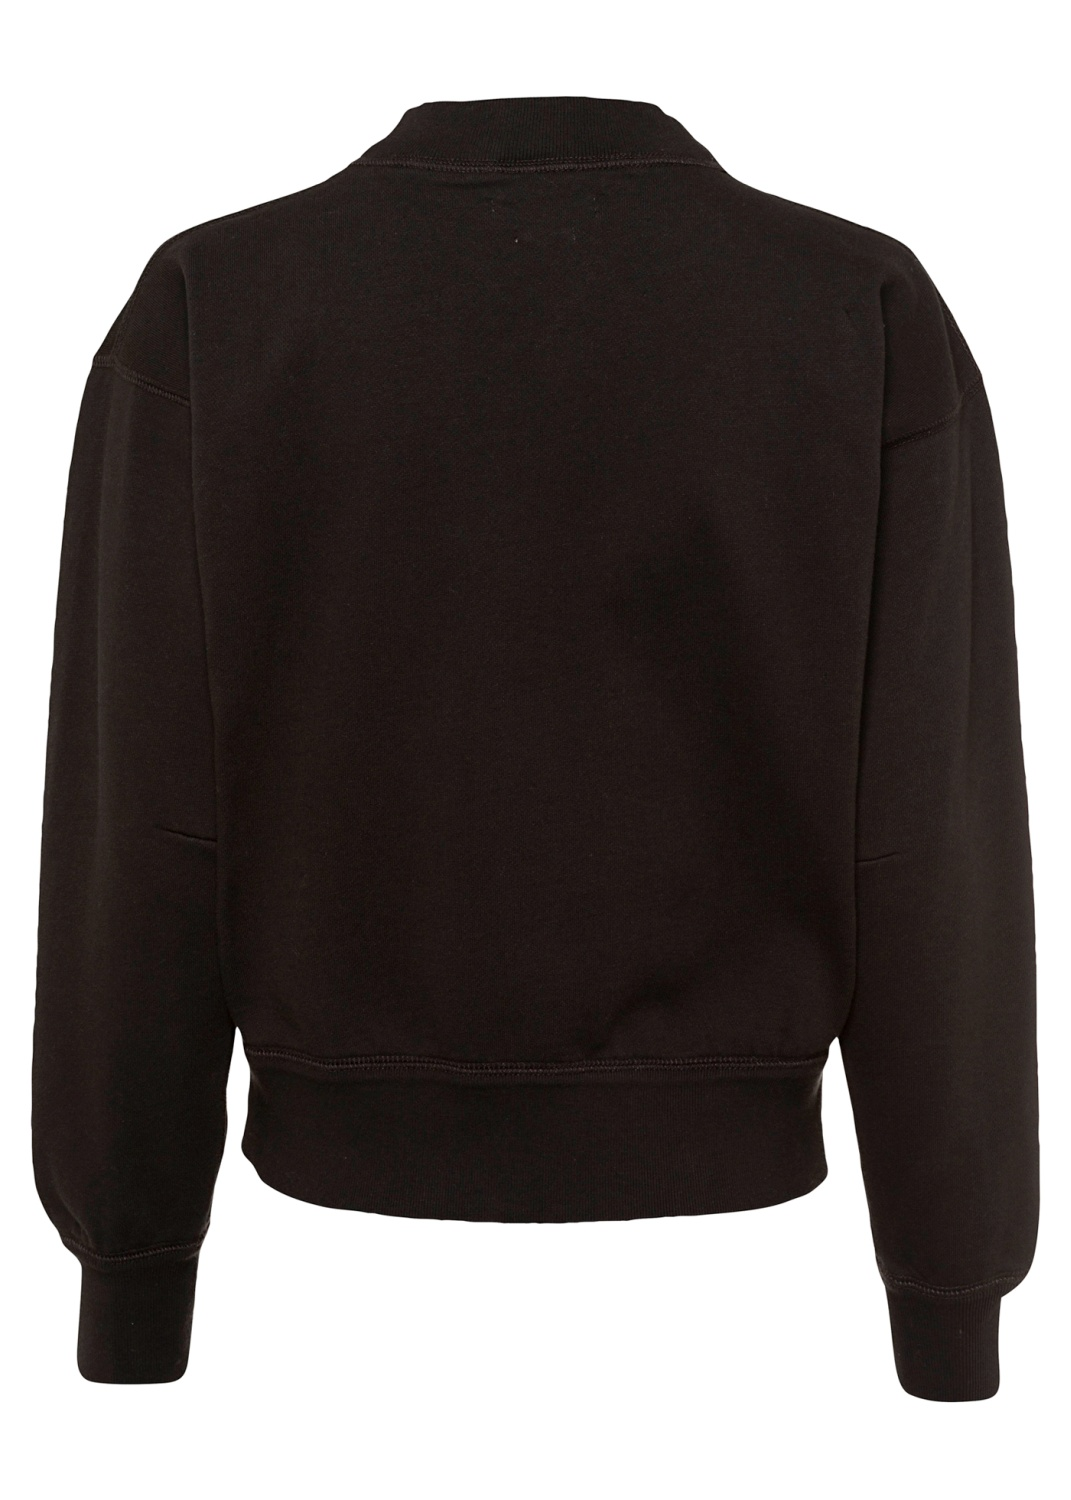 MOBY Sweat shirt image number 1